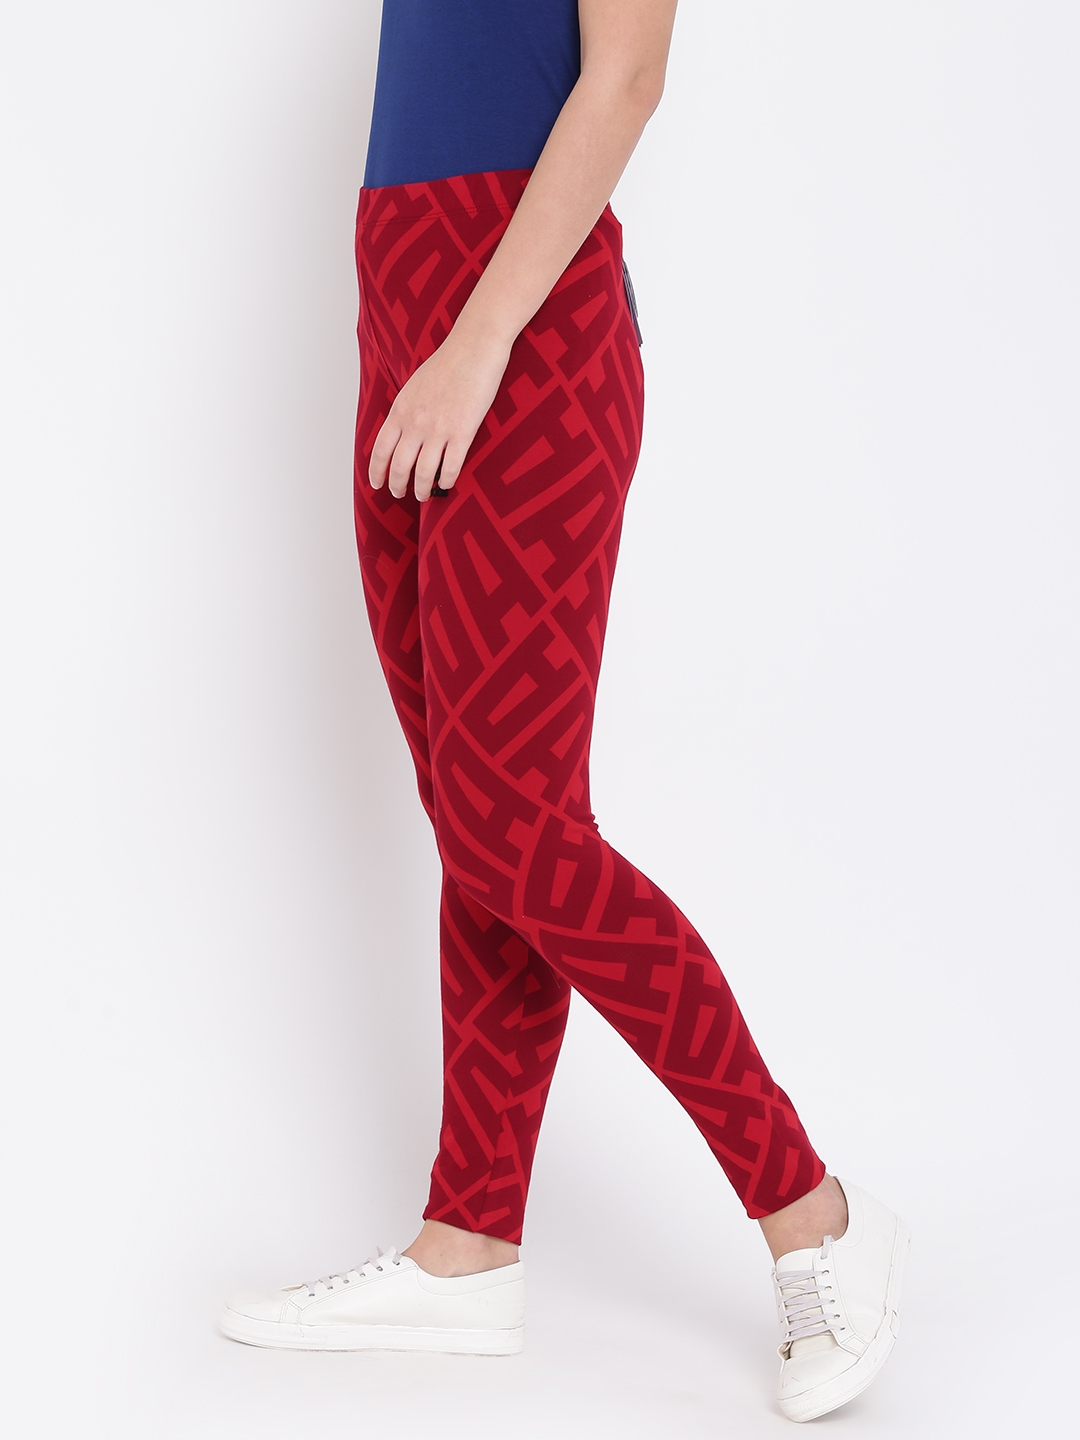 08ae6876e00 Buy ADIDAS Originals Red All Over Print Printed Tights - Tights for ...